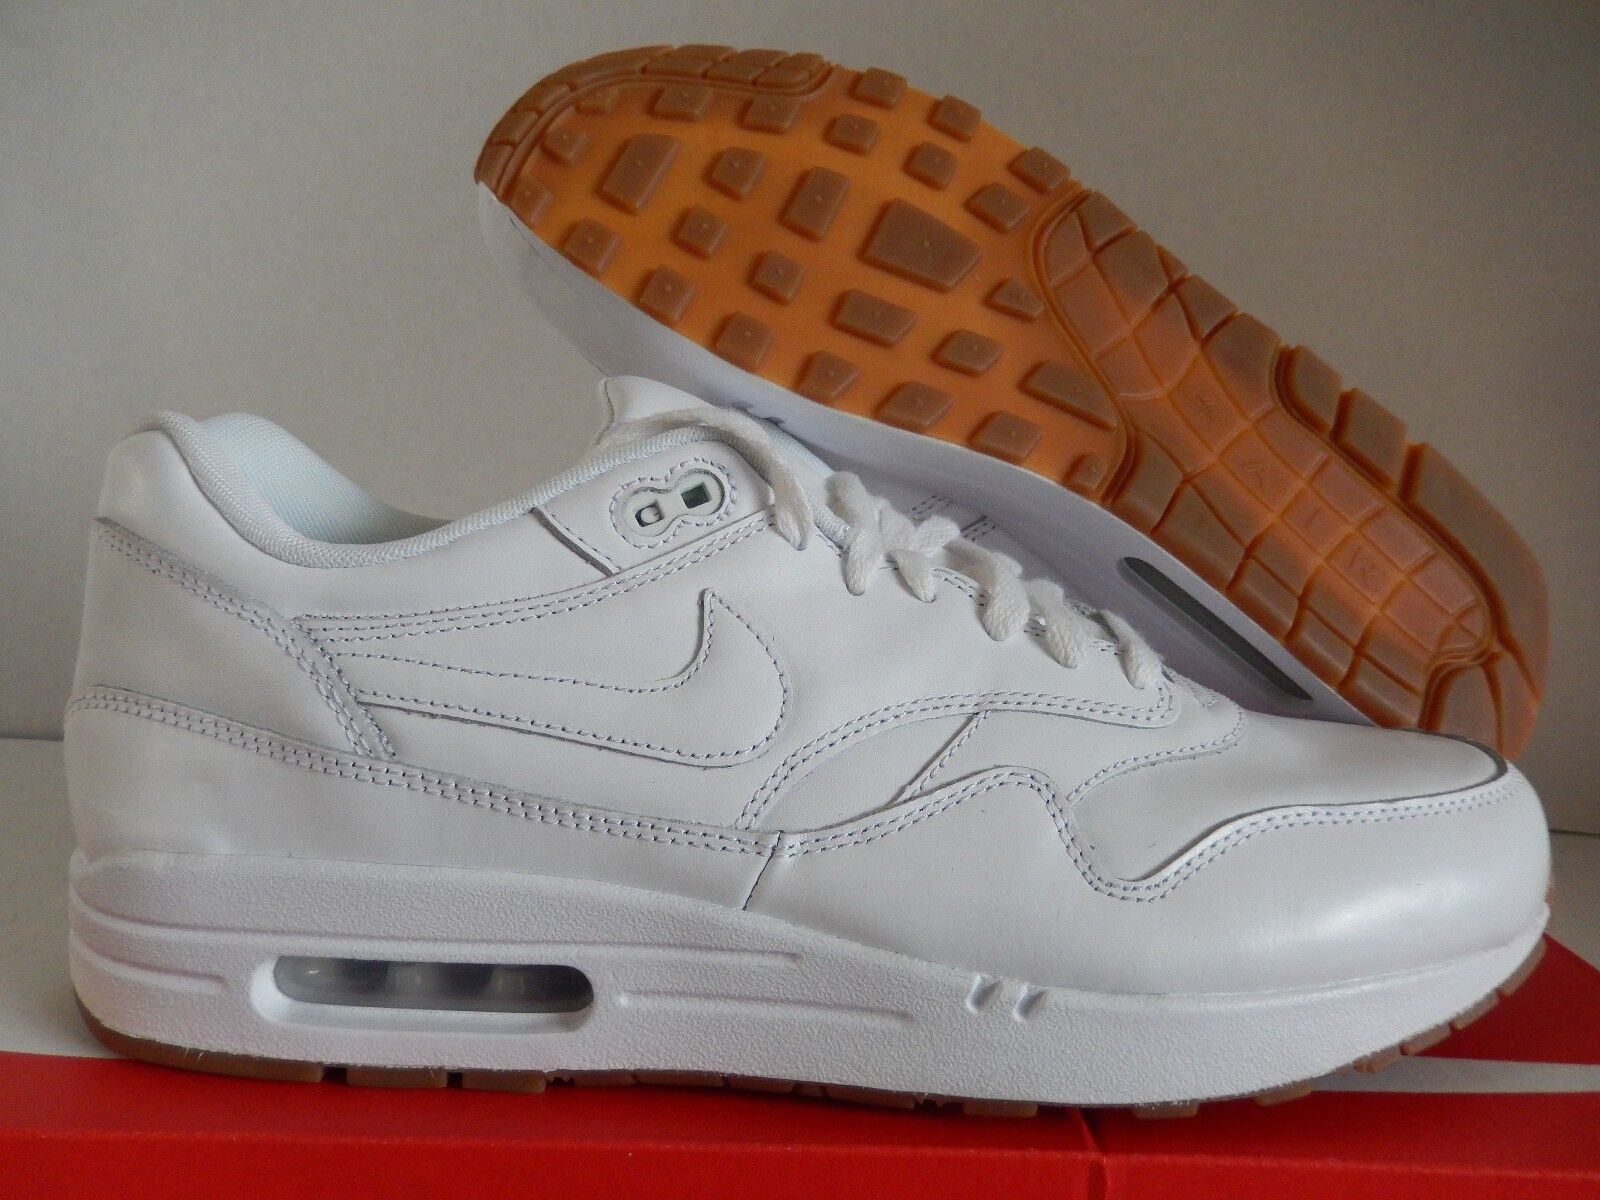 online retailer 3dc29 ab07a ... new zealand nike air max 1 id white gum brown 11.5 sz 11.5 brown 628312  991